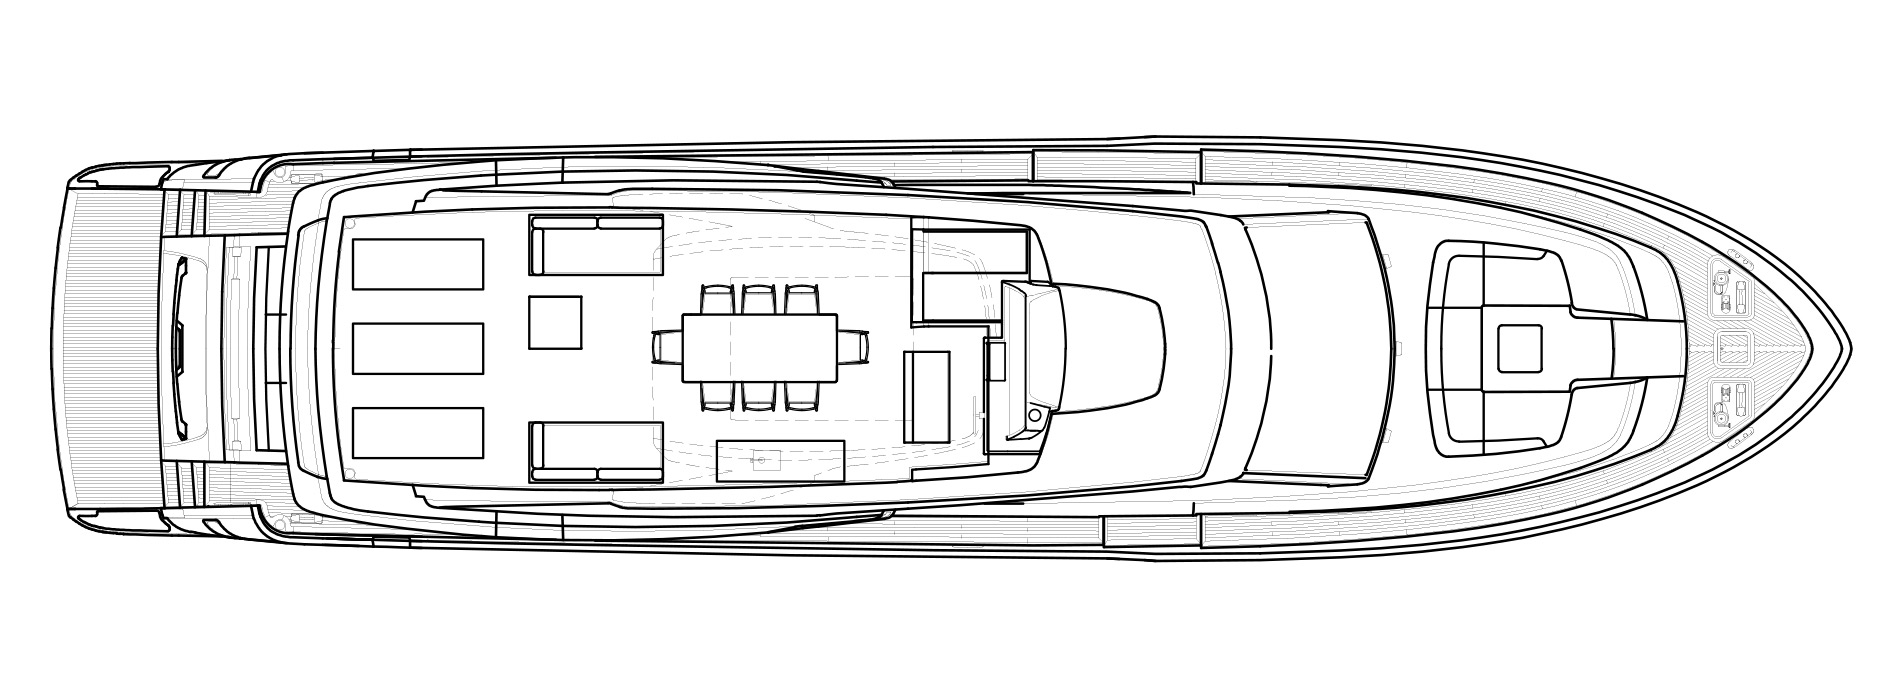 Sanlorenzo Yachts SL86 Flying bridge Version A